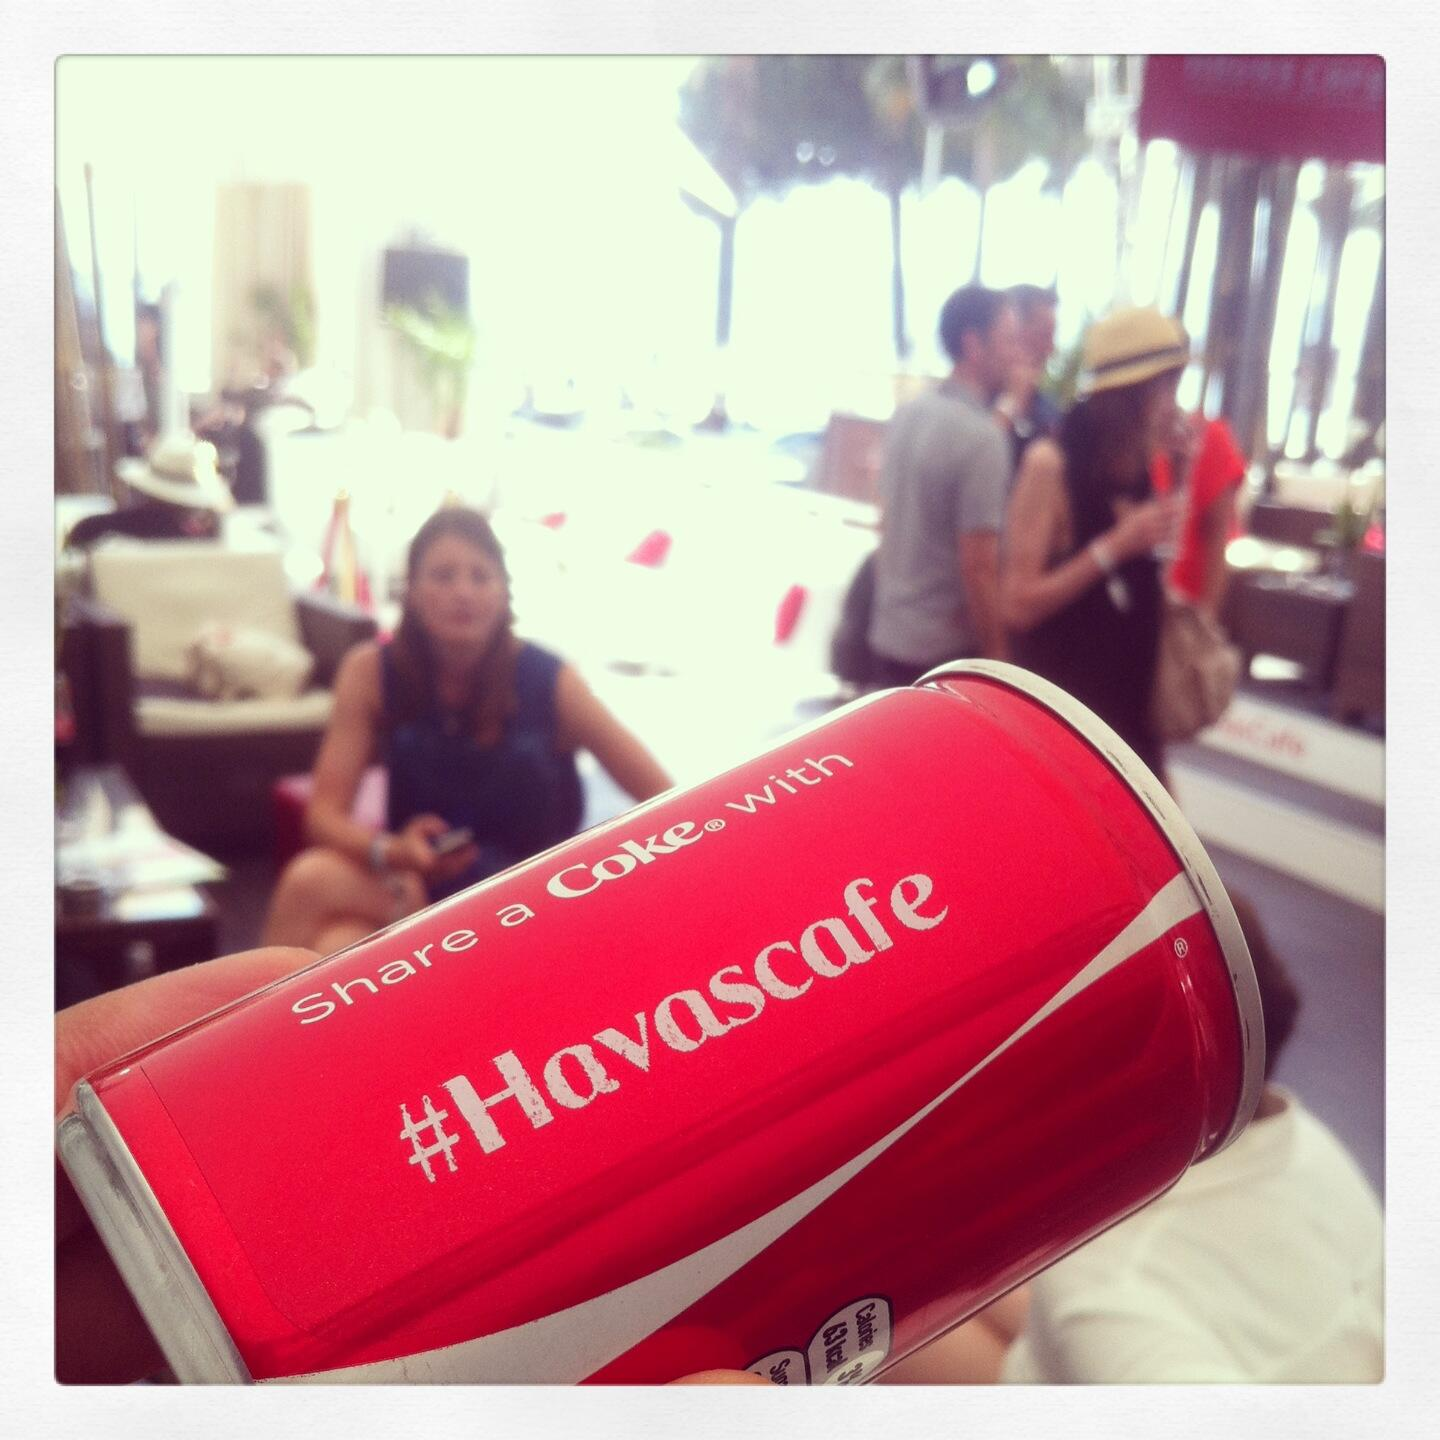 RT @HavasCafe: #ShareaCoke with @CocaCola @Havas_SE & @valycuty at the #HavasCafe #CannesLive #CannesLions http://t.co/JxEP0ywtup